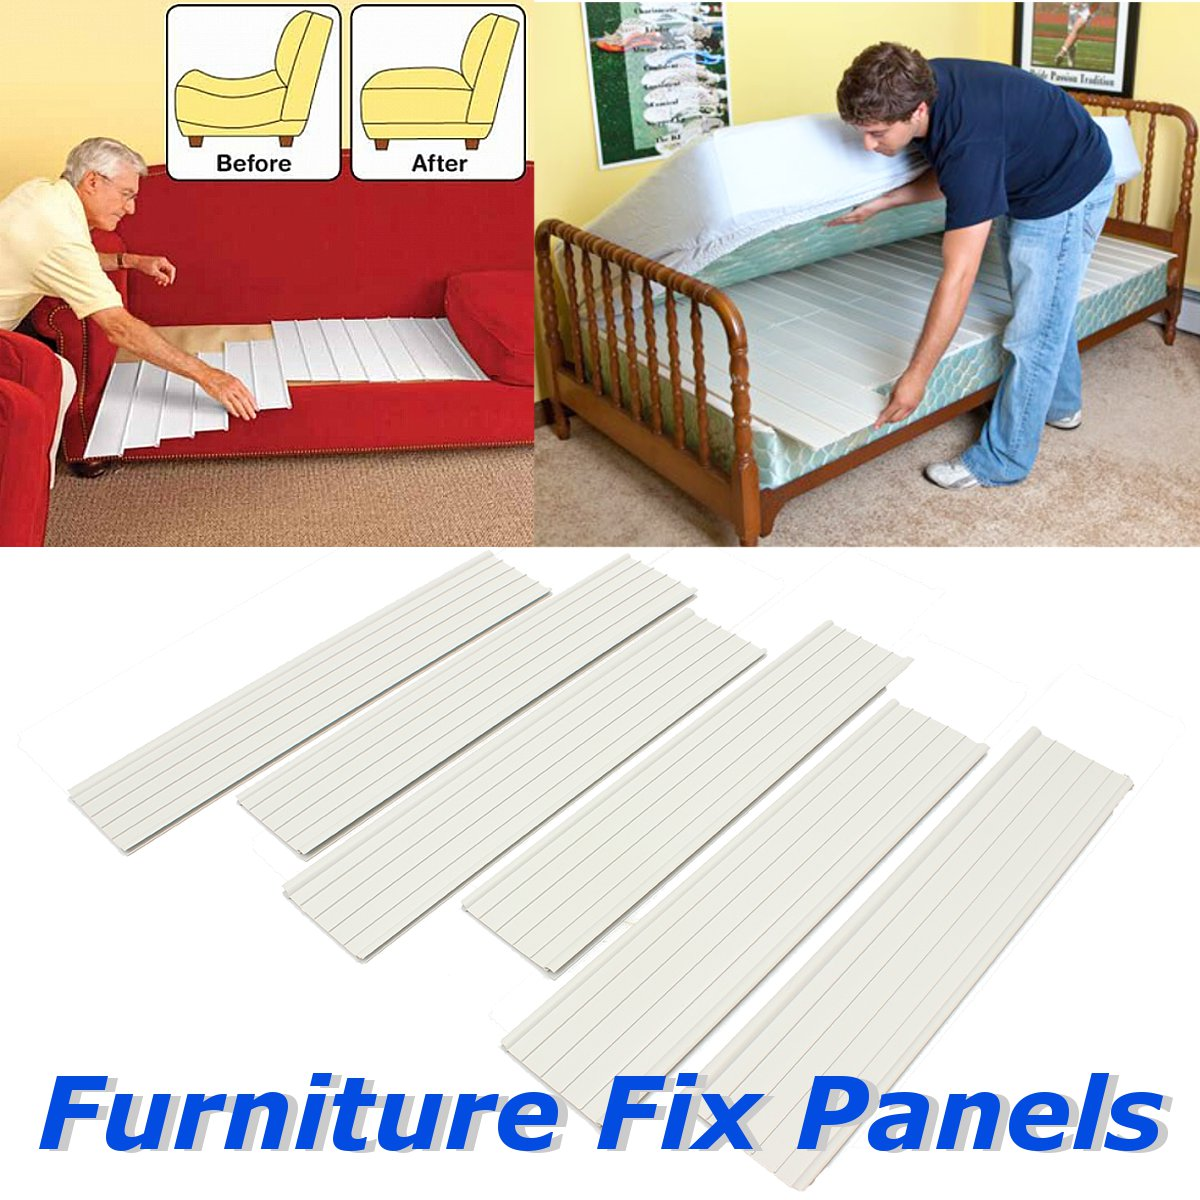 6PCS Furniture Sofa Support Cushion Fix Panels Quick Fix Support Cushions Pads for Sectional Sofa Seat Sagging Furniture Parts6PCS Furniture Sofa Support Cushion Fix Panels Quick Fix Support Cushions Pads for Sectional Sofa Seat Sagging Furniture Parts